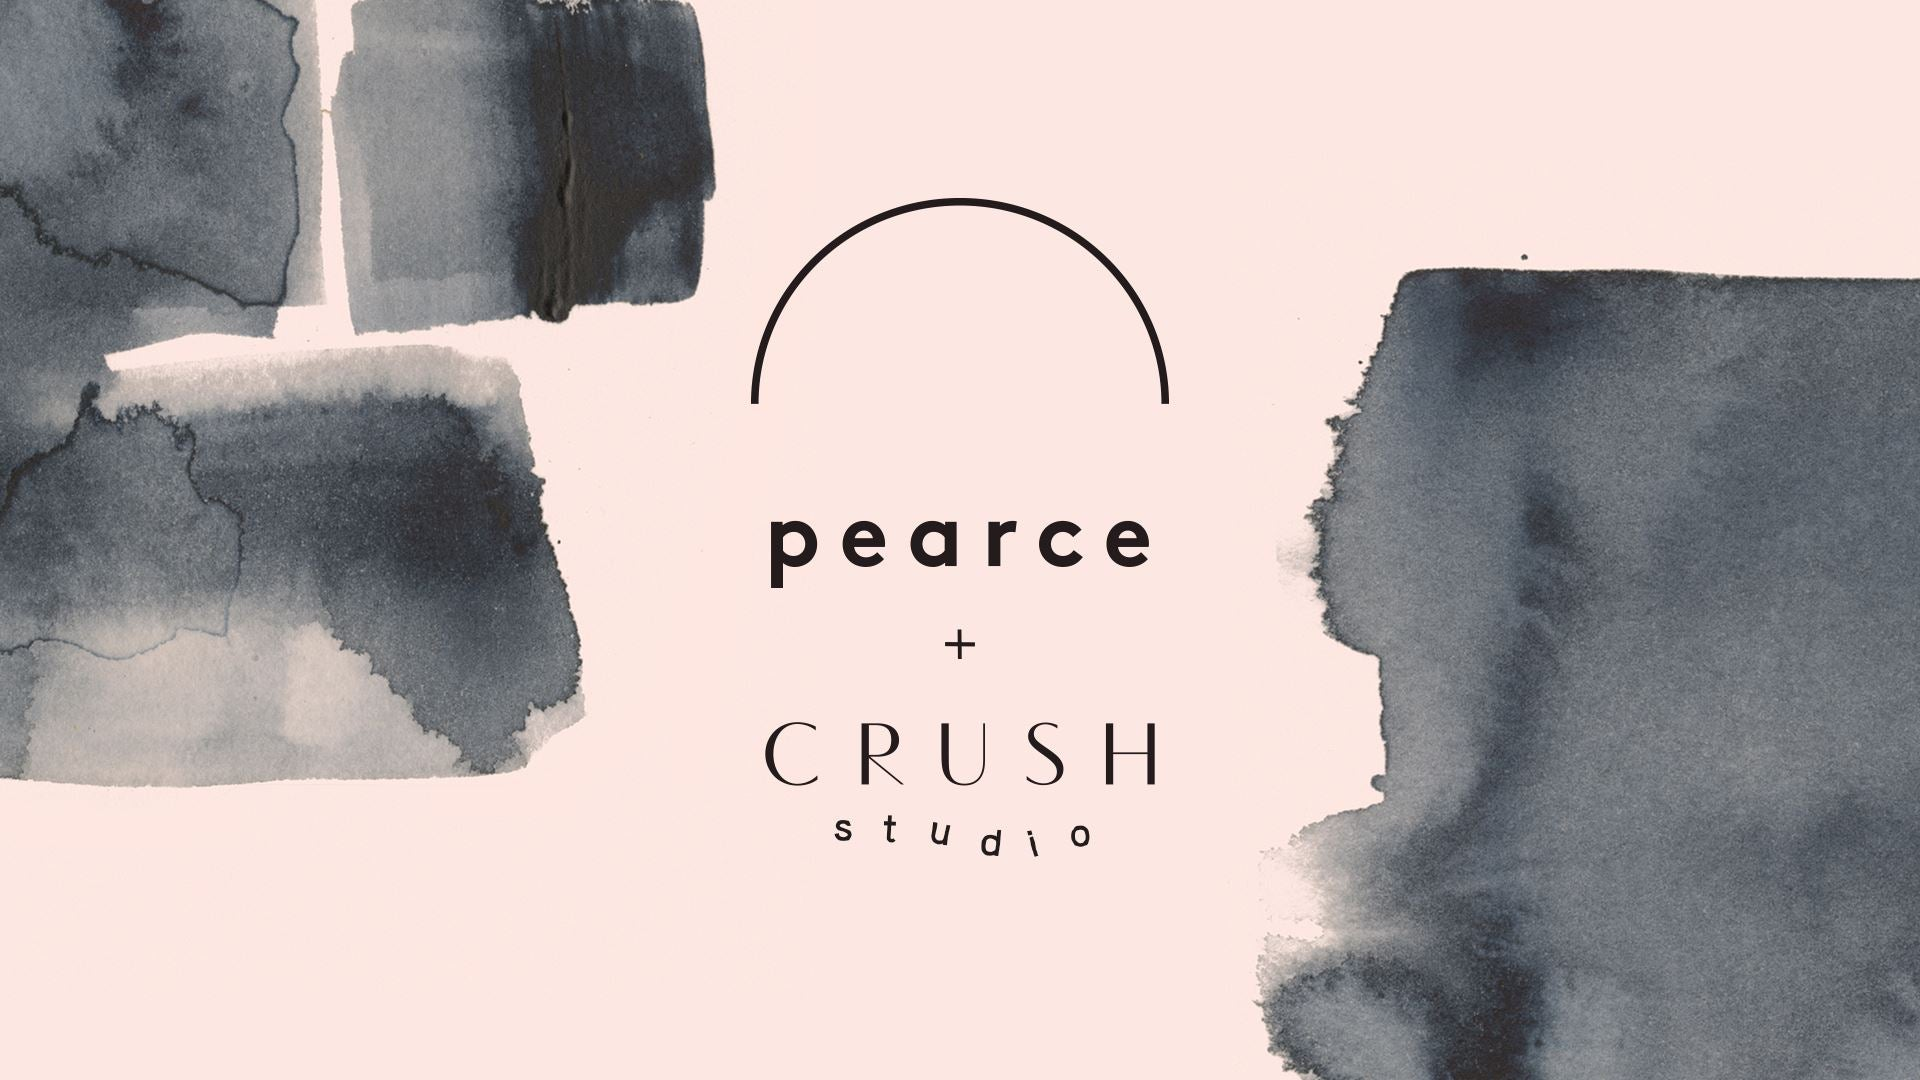 Pearce x Crush at Vagabond